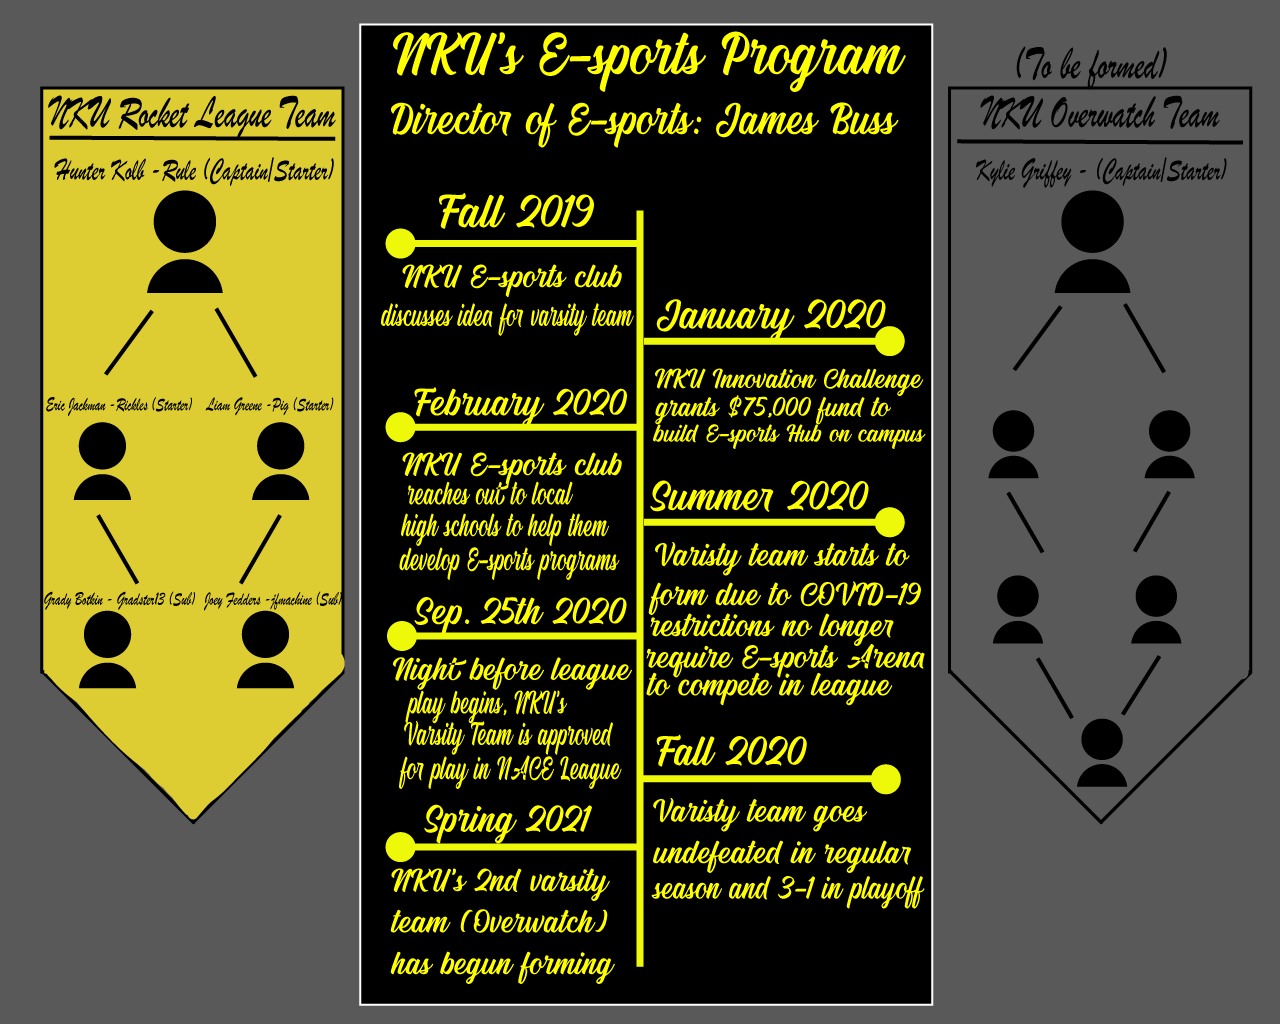 An infographic depicting the timeline for NKU Esports over the last few years.